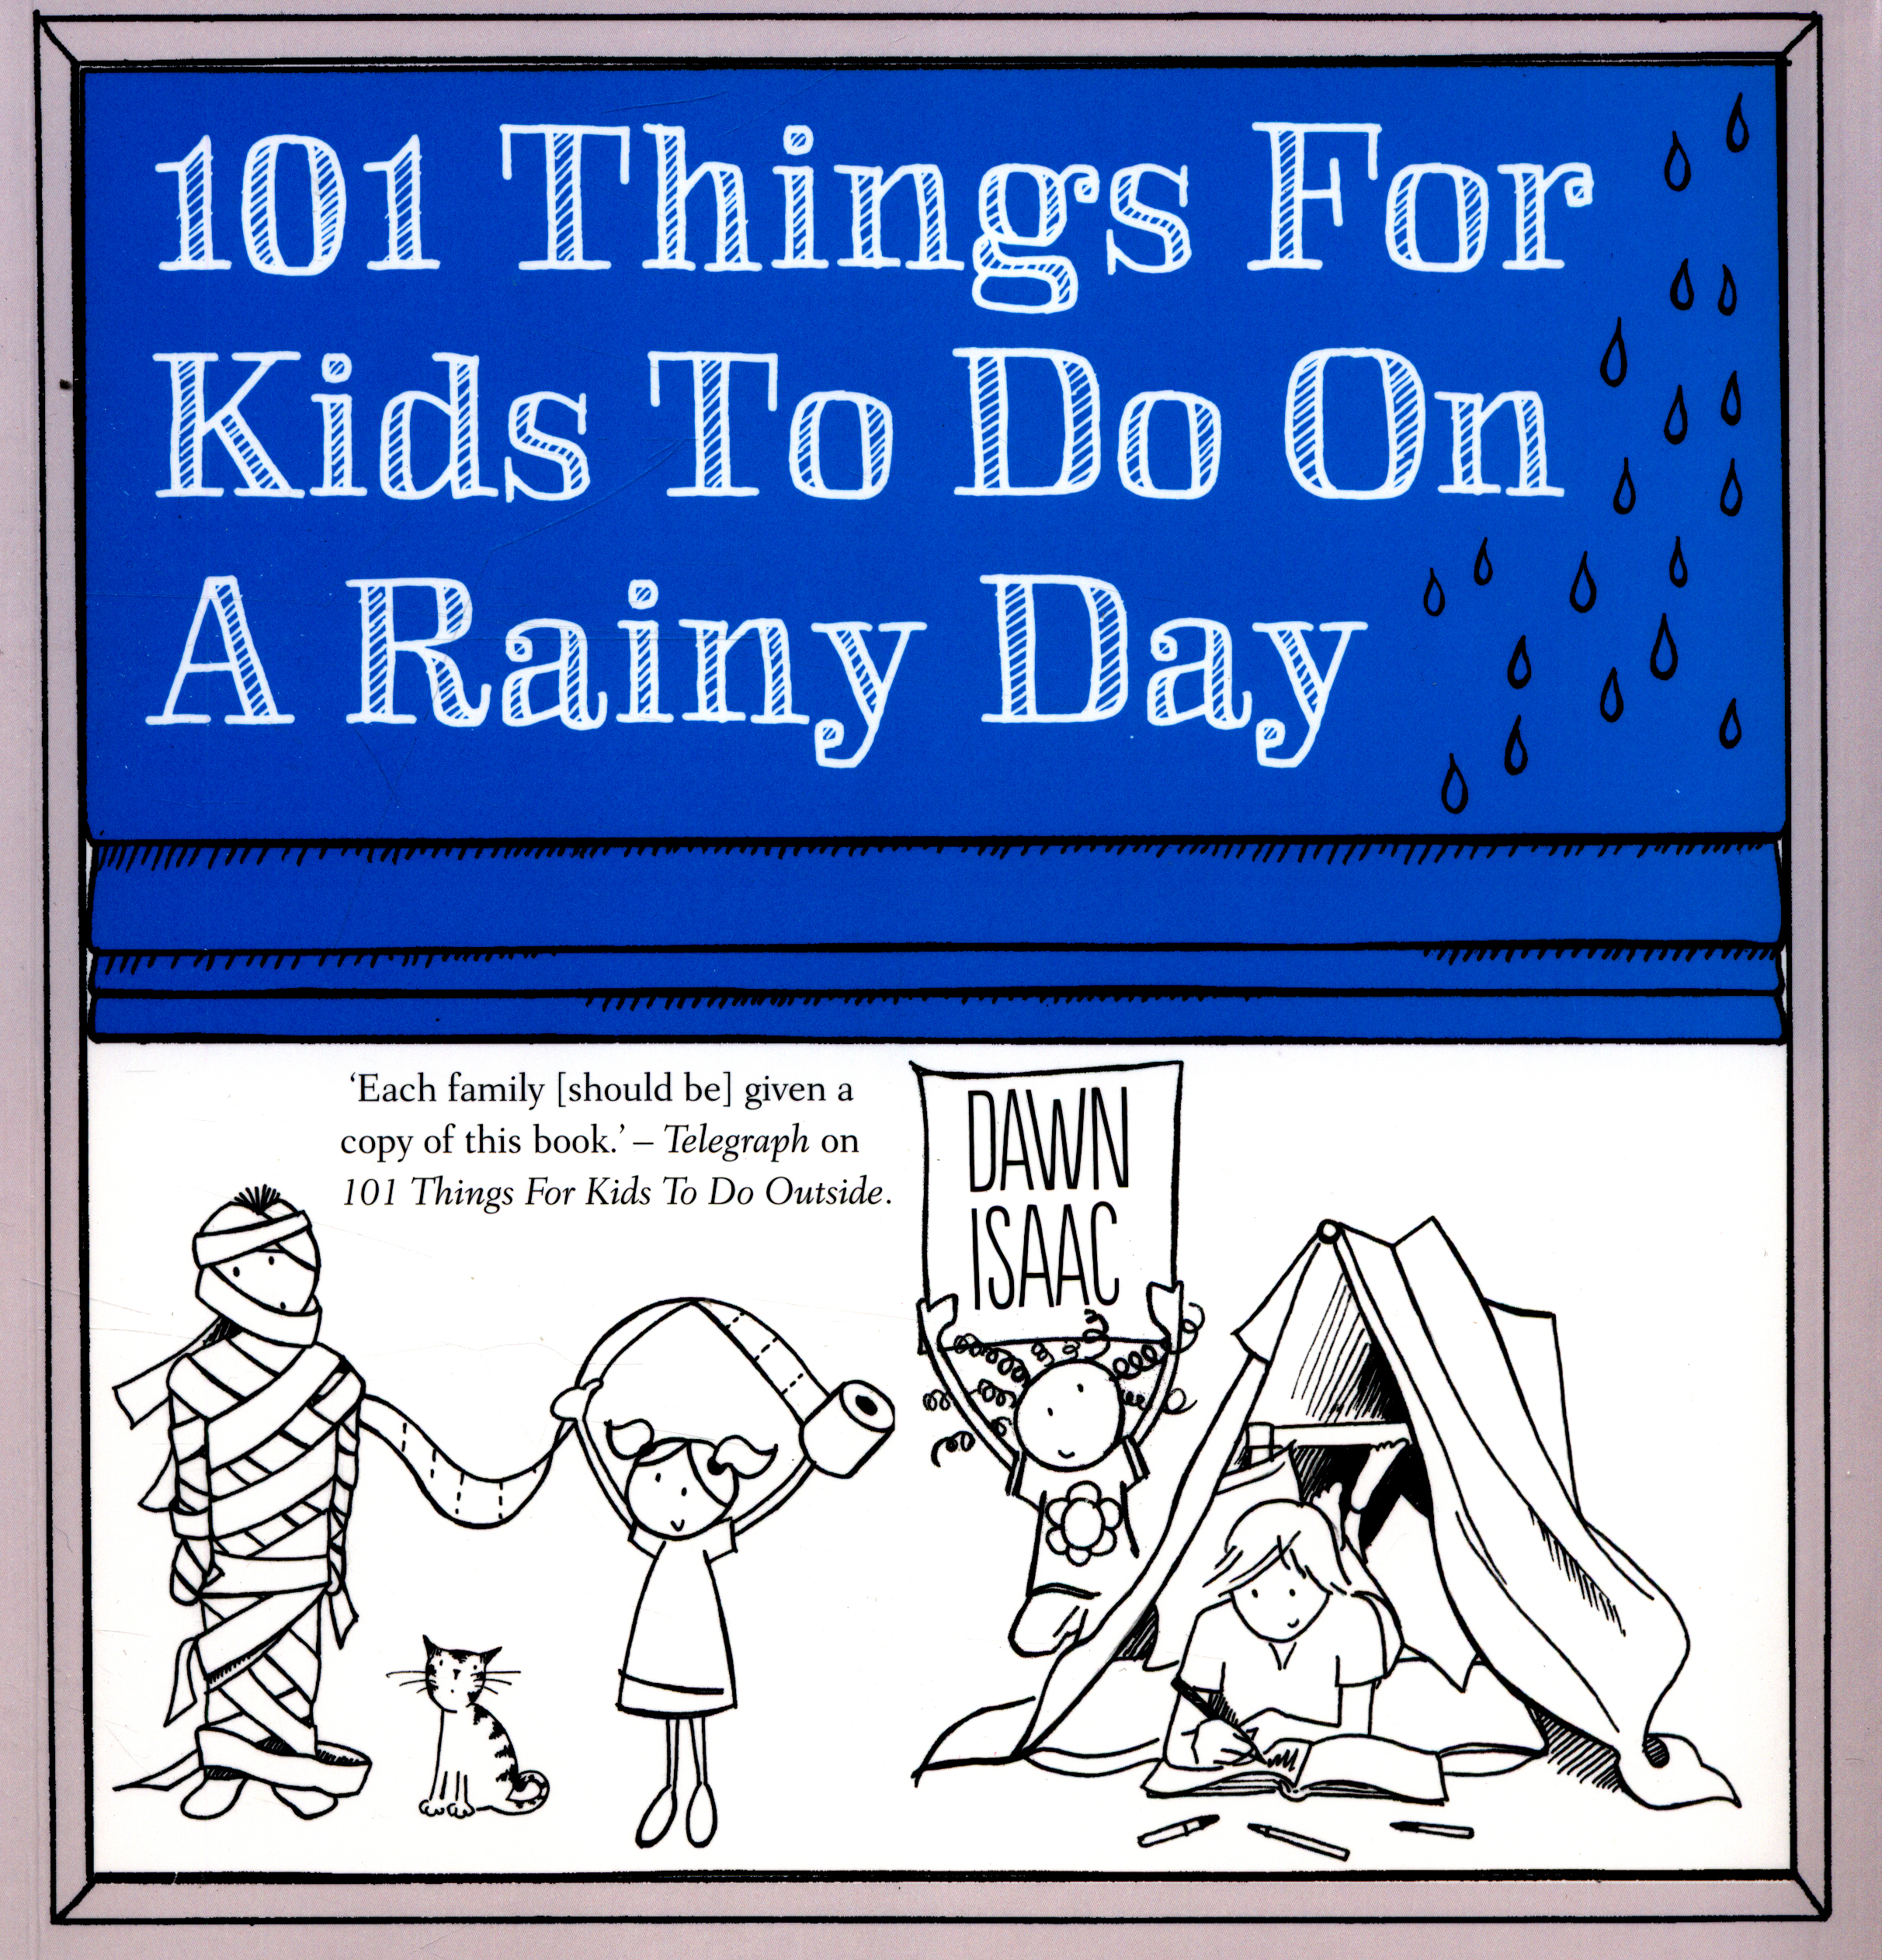 from Roman adult things to do on a rainy day